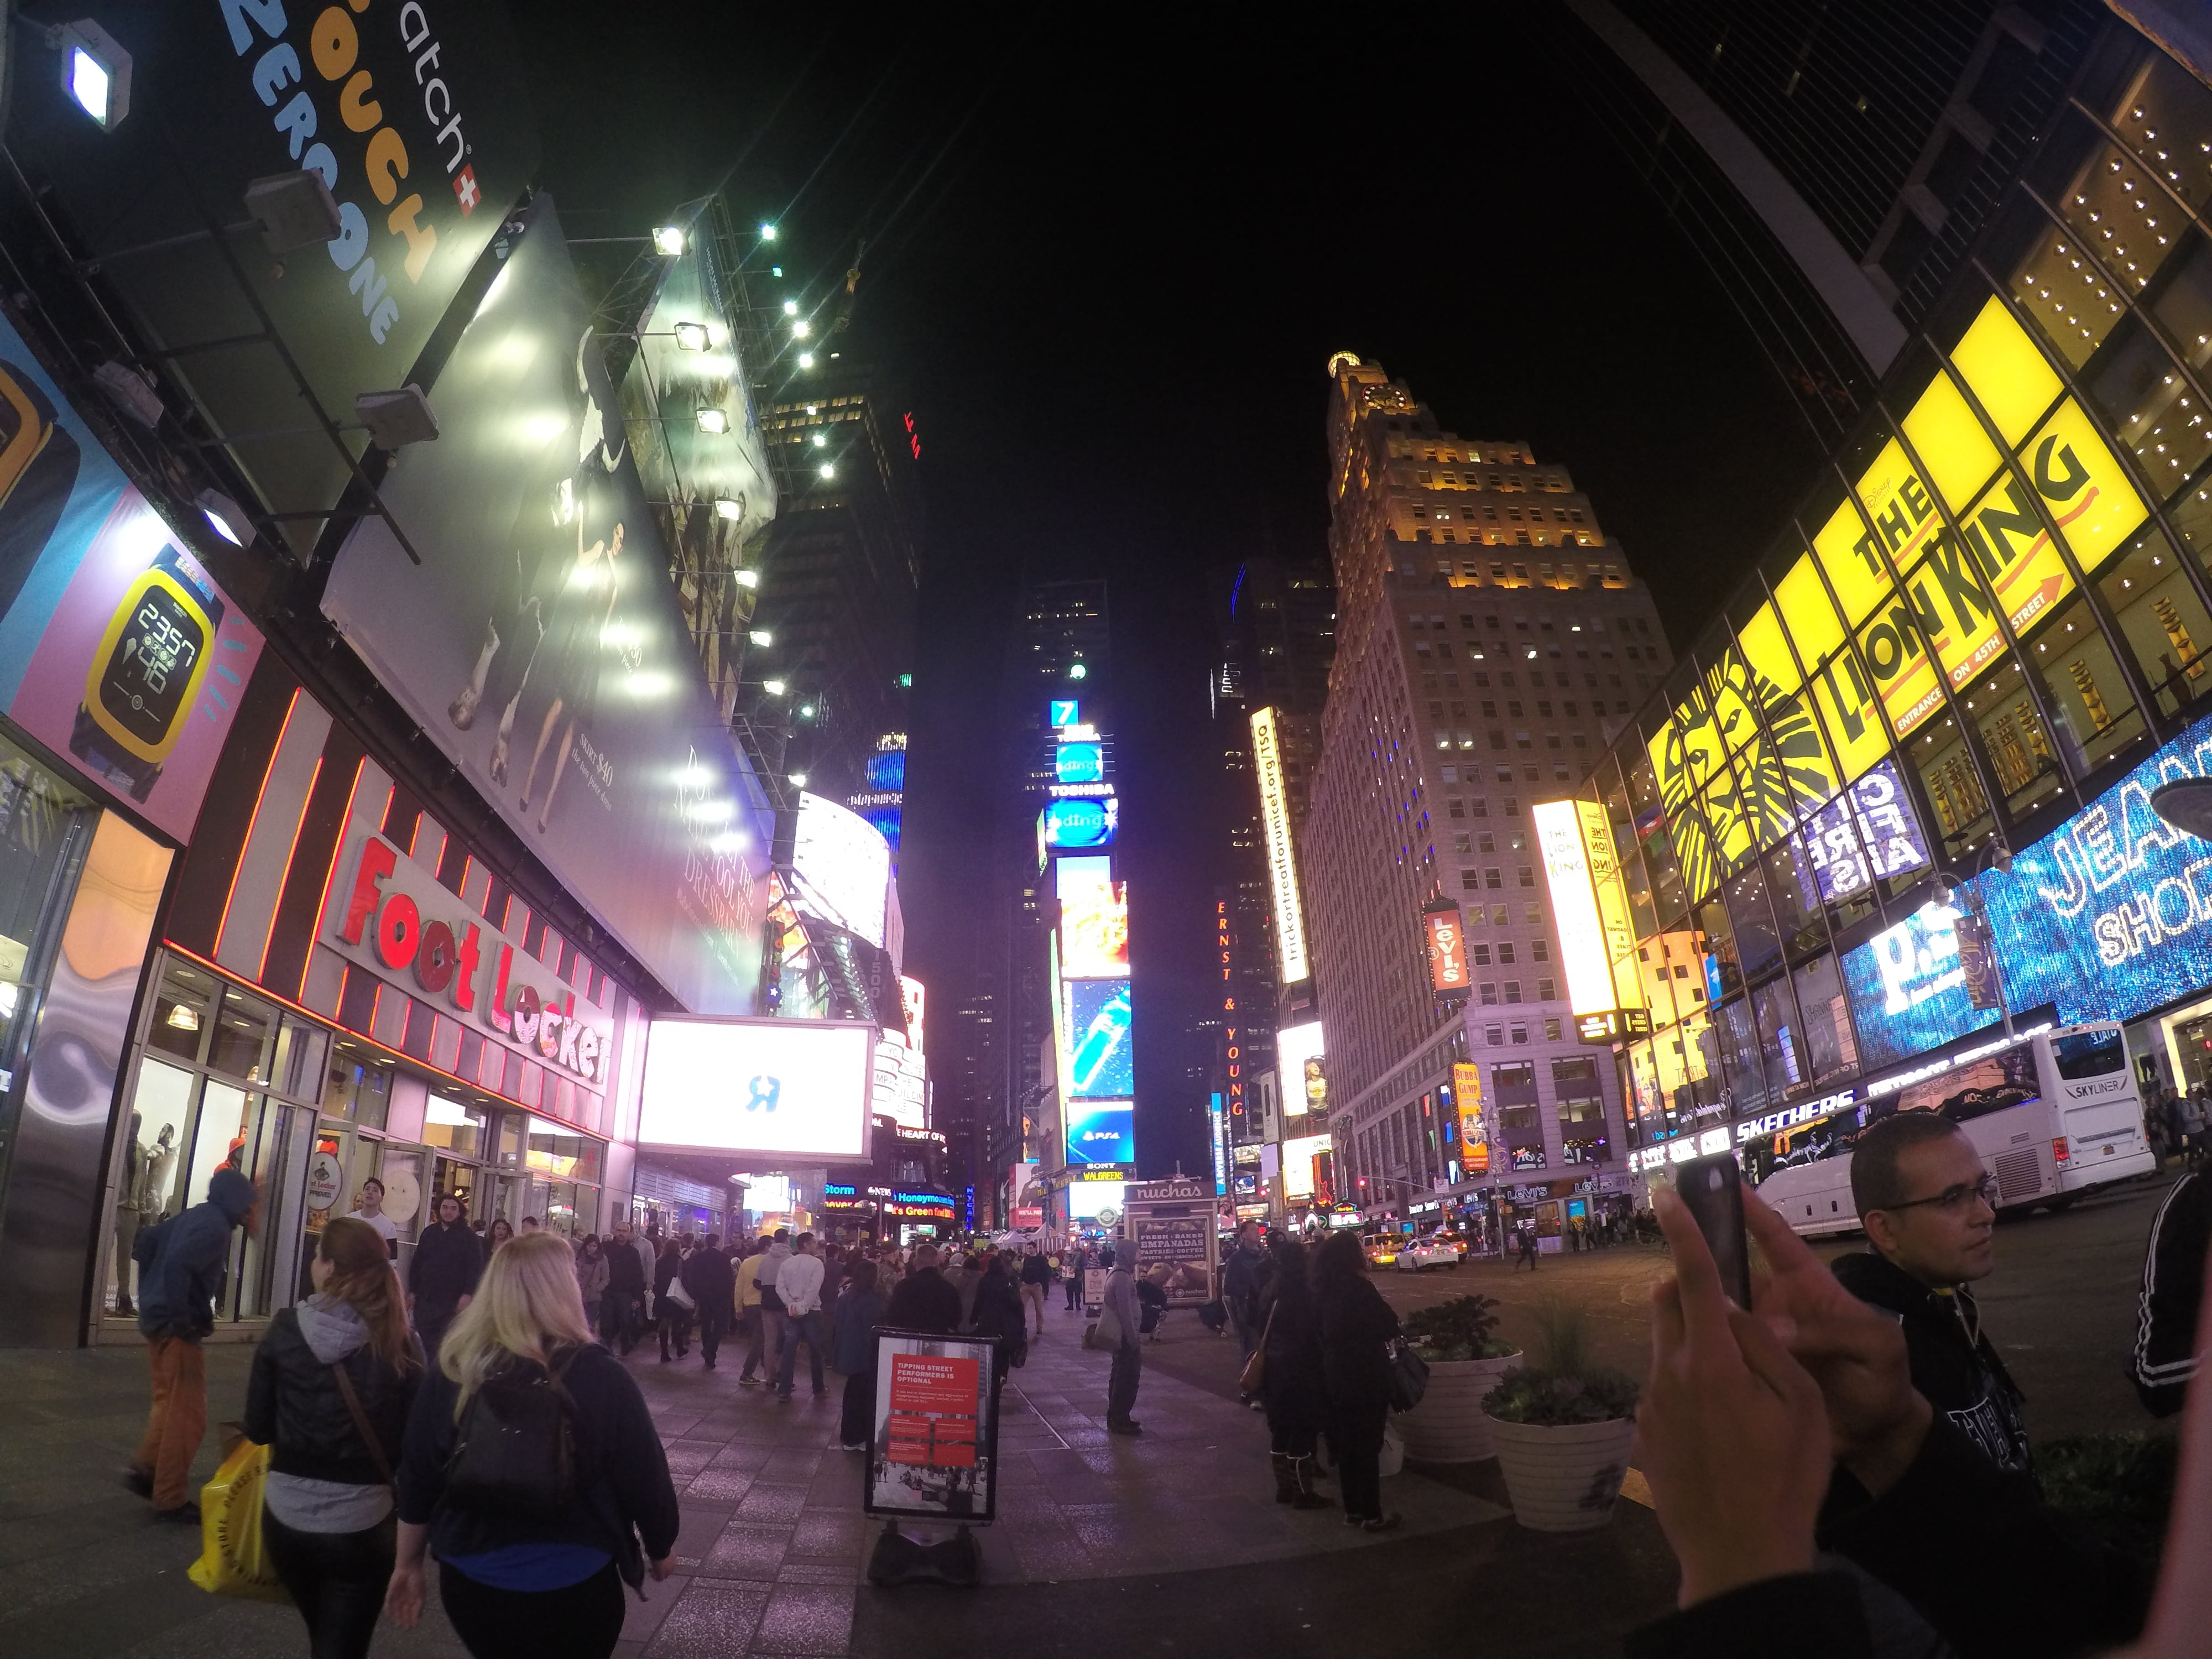 Times Square New York City at night